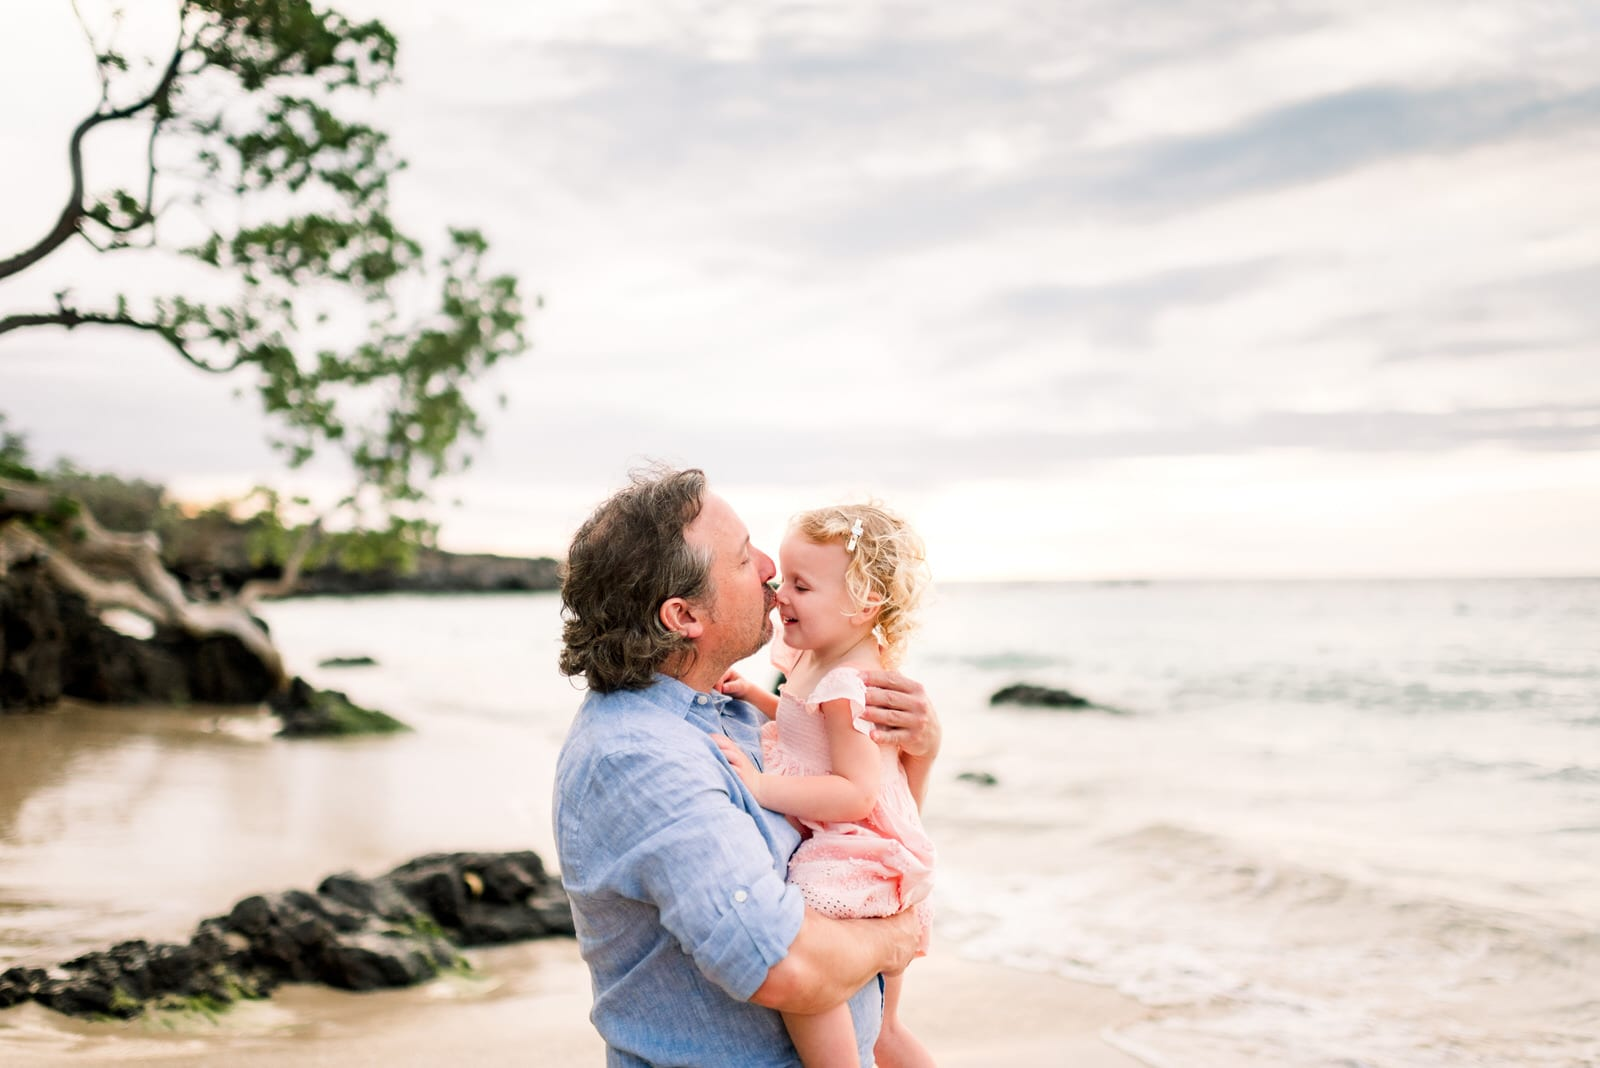 beach-family-photos-hawaii-flower-crown-21.jpg